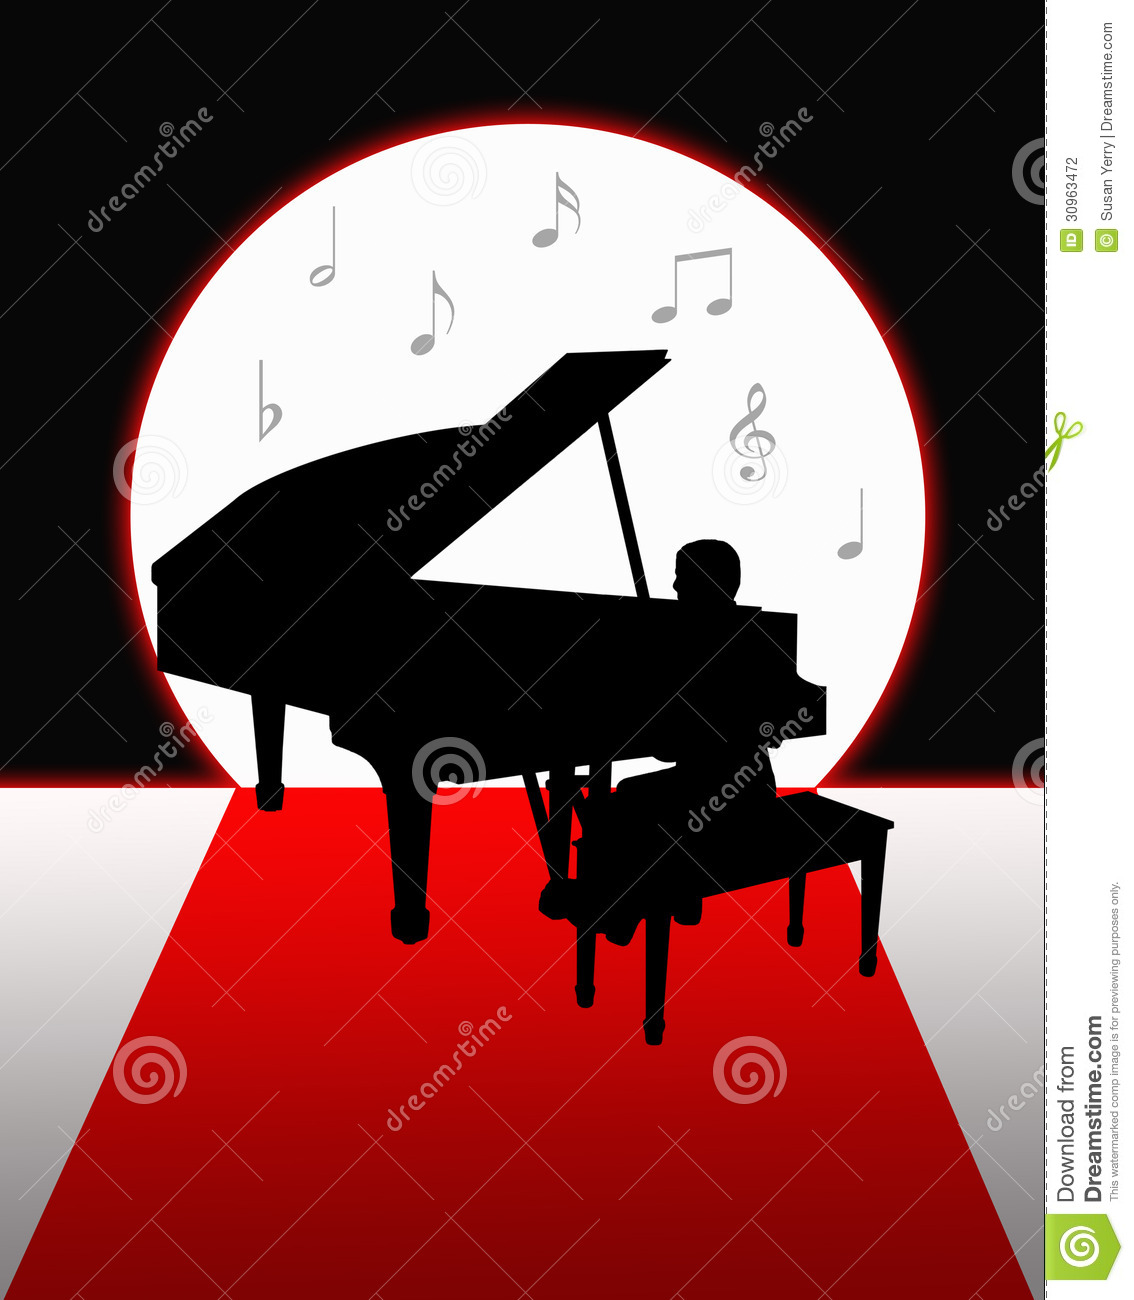 Silhouette of a man playing a grand piano in the moonlight with    Playing Piano Silhouette